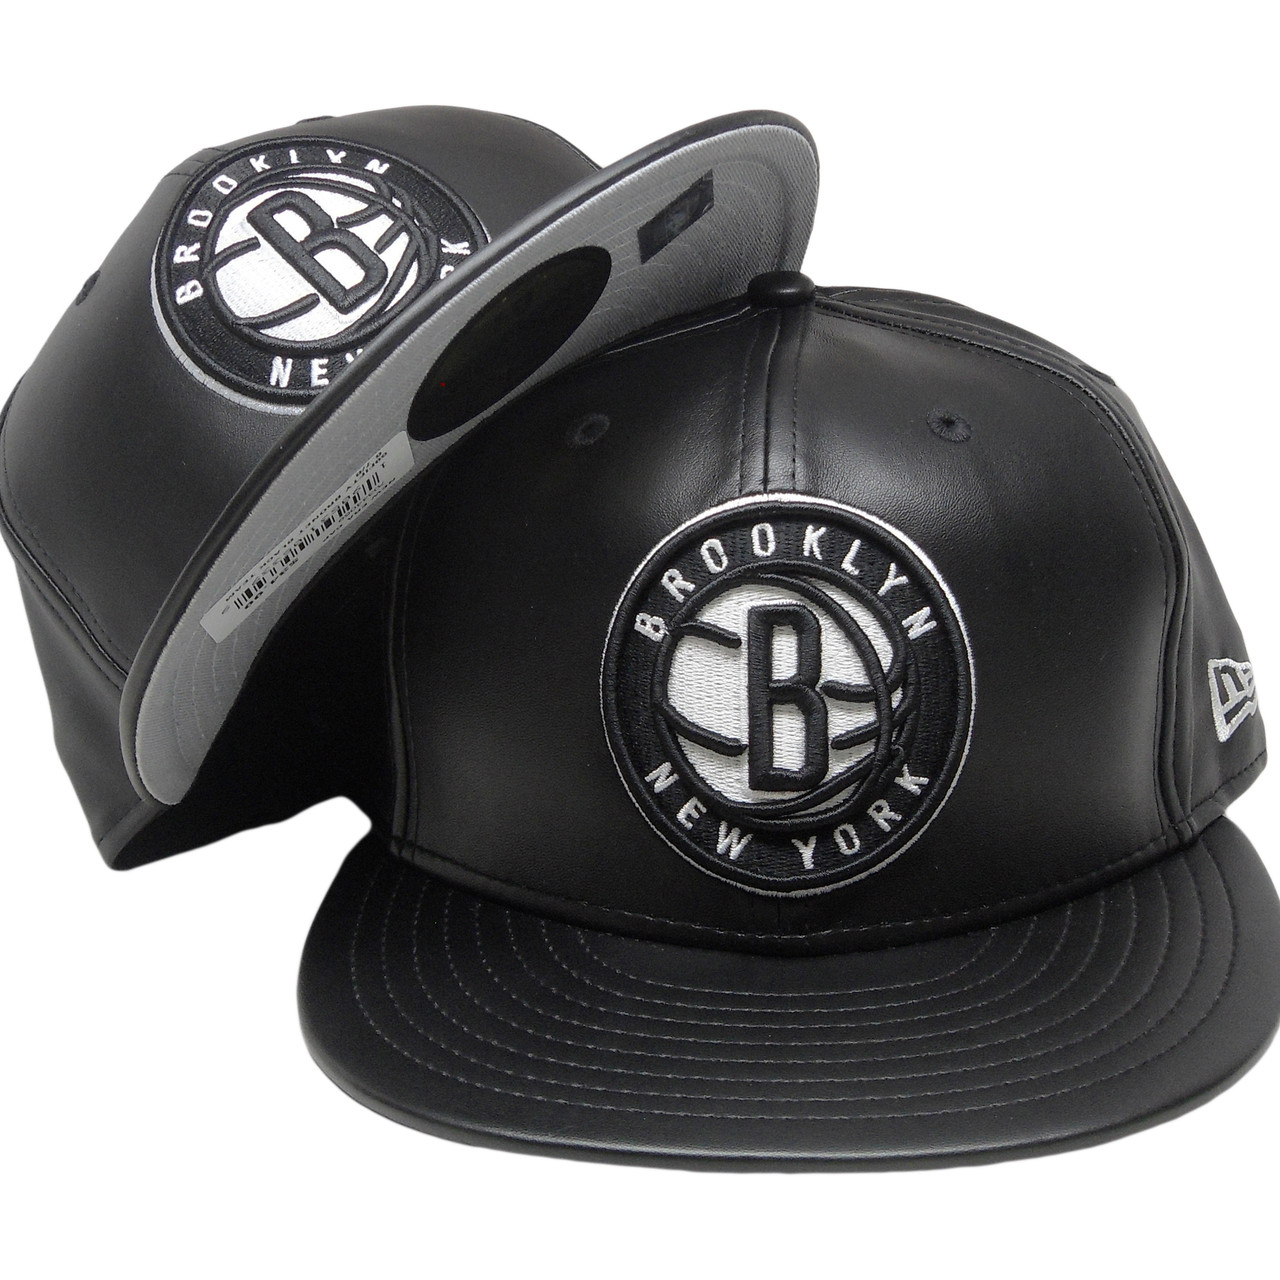 wholesale dealer 11b69 e6f1e Brooklyn Nets New Era 59Fity Black Team Fitted Hat - Black Leather, White